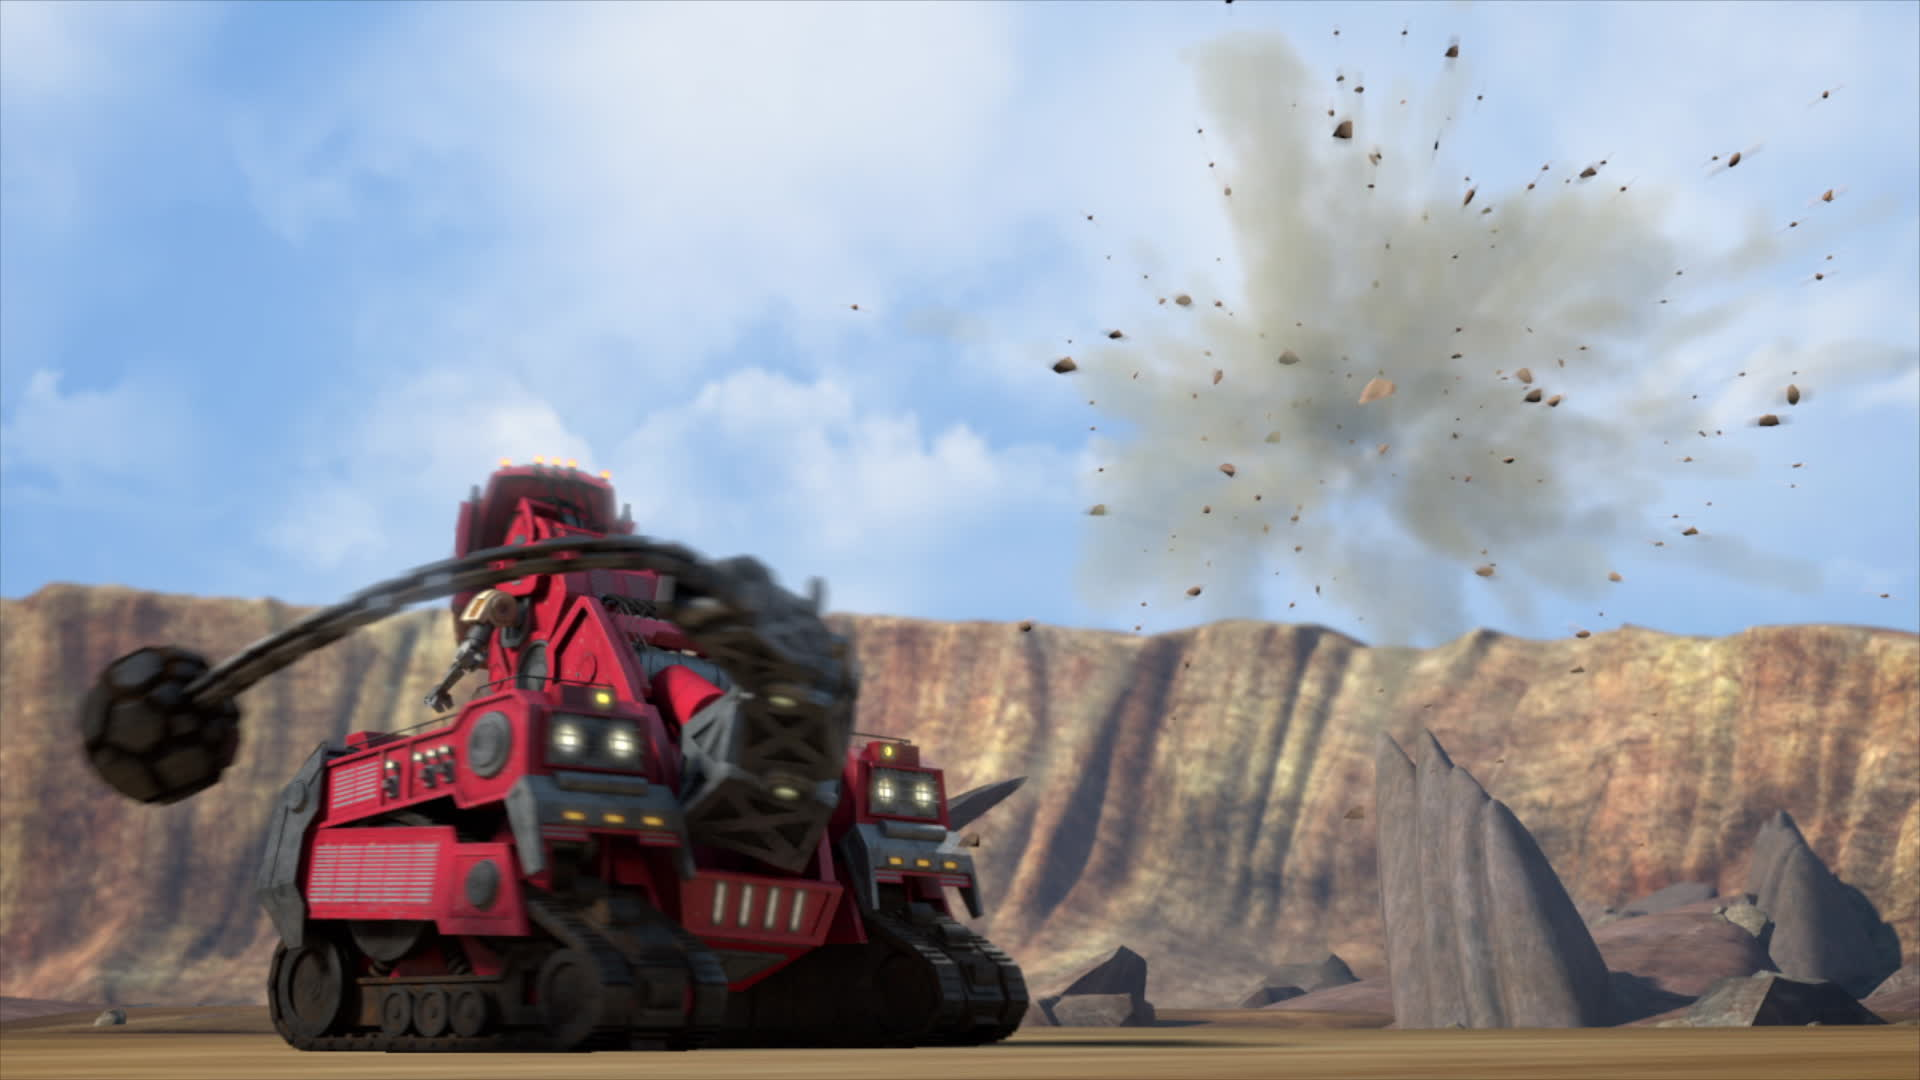 Introductory clip for new Dinotrux '5 Minute Favorites' now on Netflix.